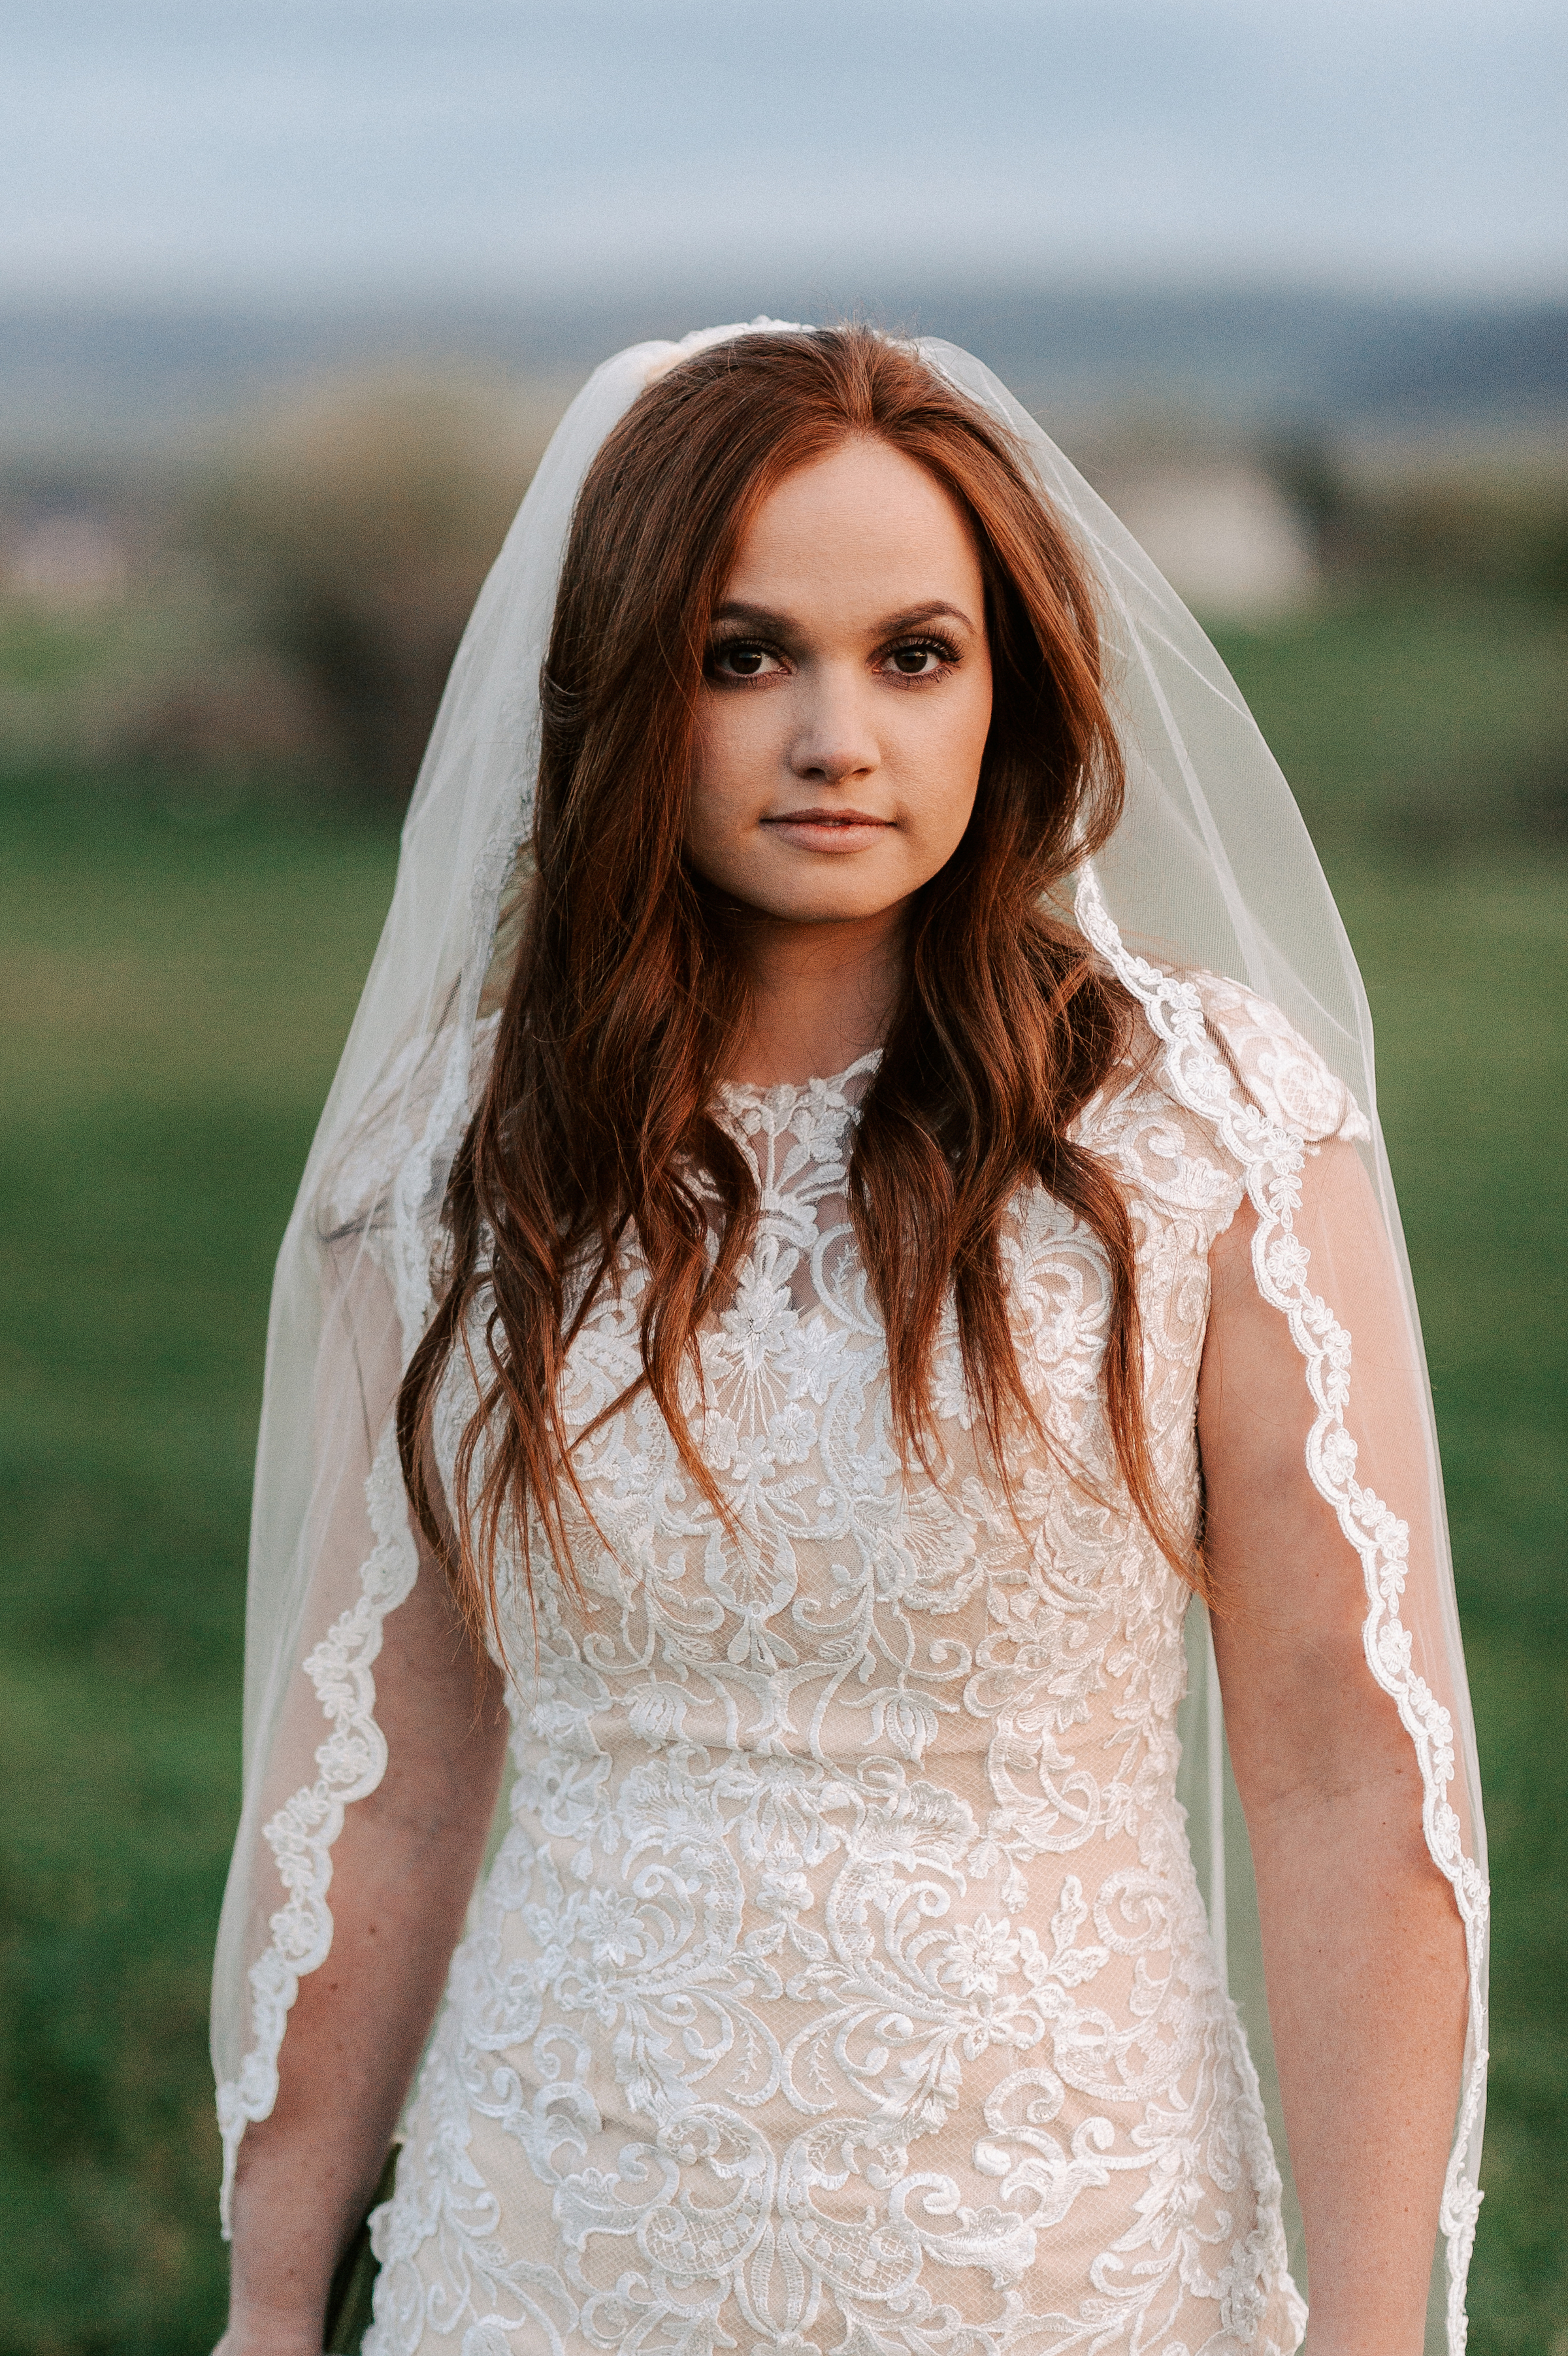 Classic Timeless Wedding Dress Traditional Bridal Veil Tew Treasures Photography 1